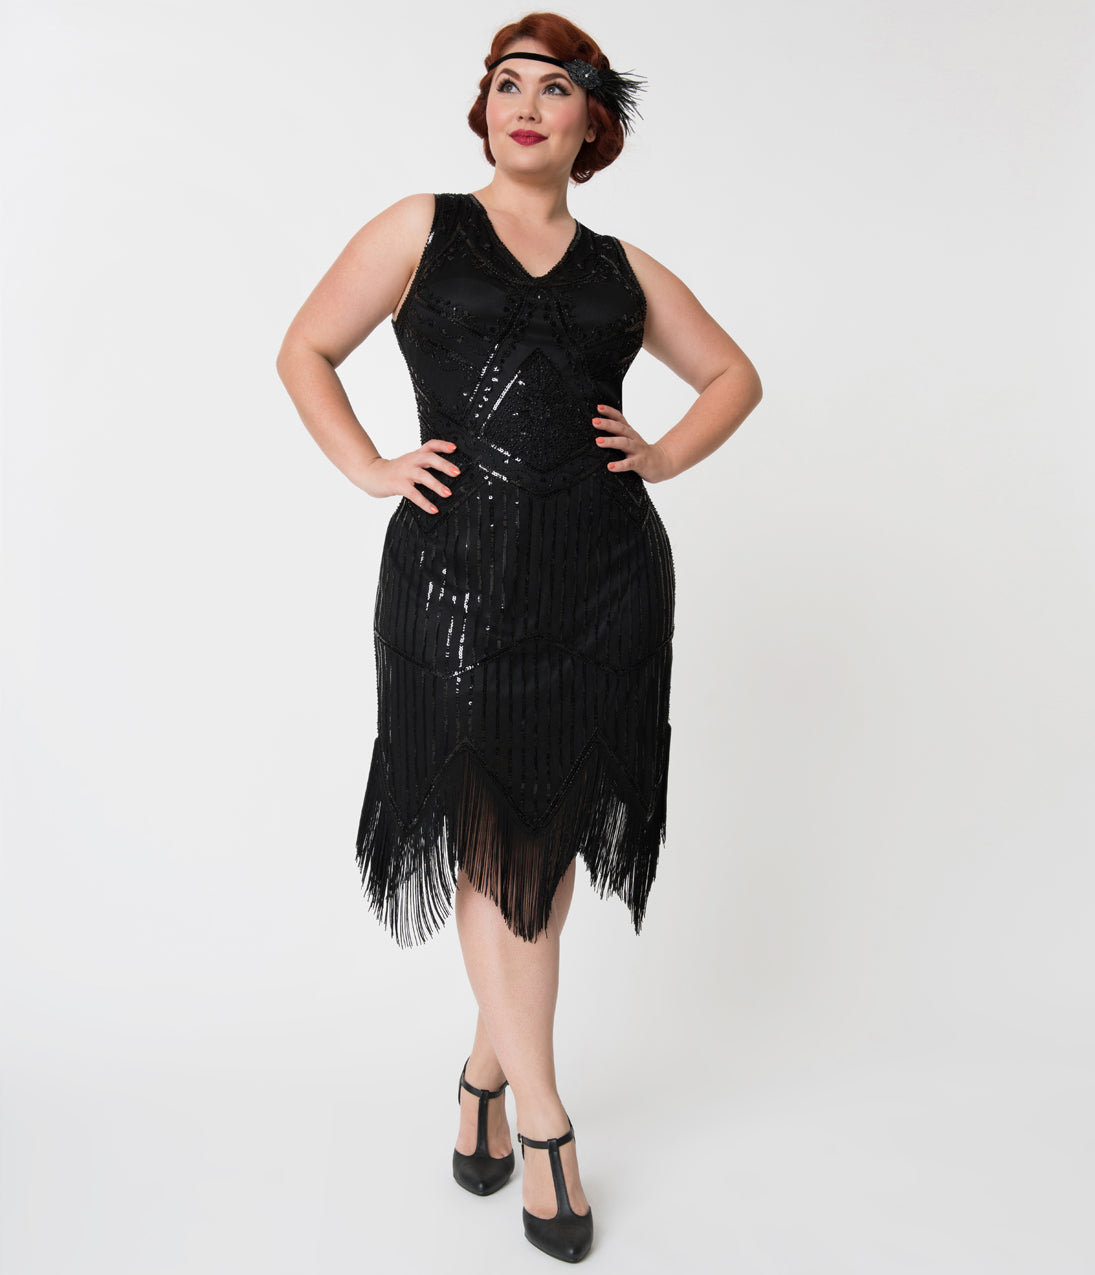 Flapper Costume: How to Dress Like a 20s Flapper Girl Unique Vintage Plus Size 1920S Black Beaded Sequin Juliette Fringe Flapper Dress $63.00 AT vintagedancer.com